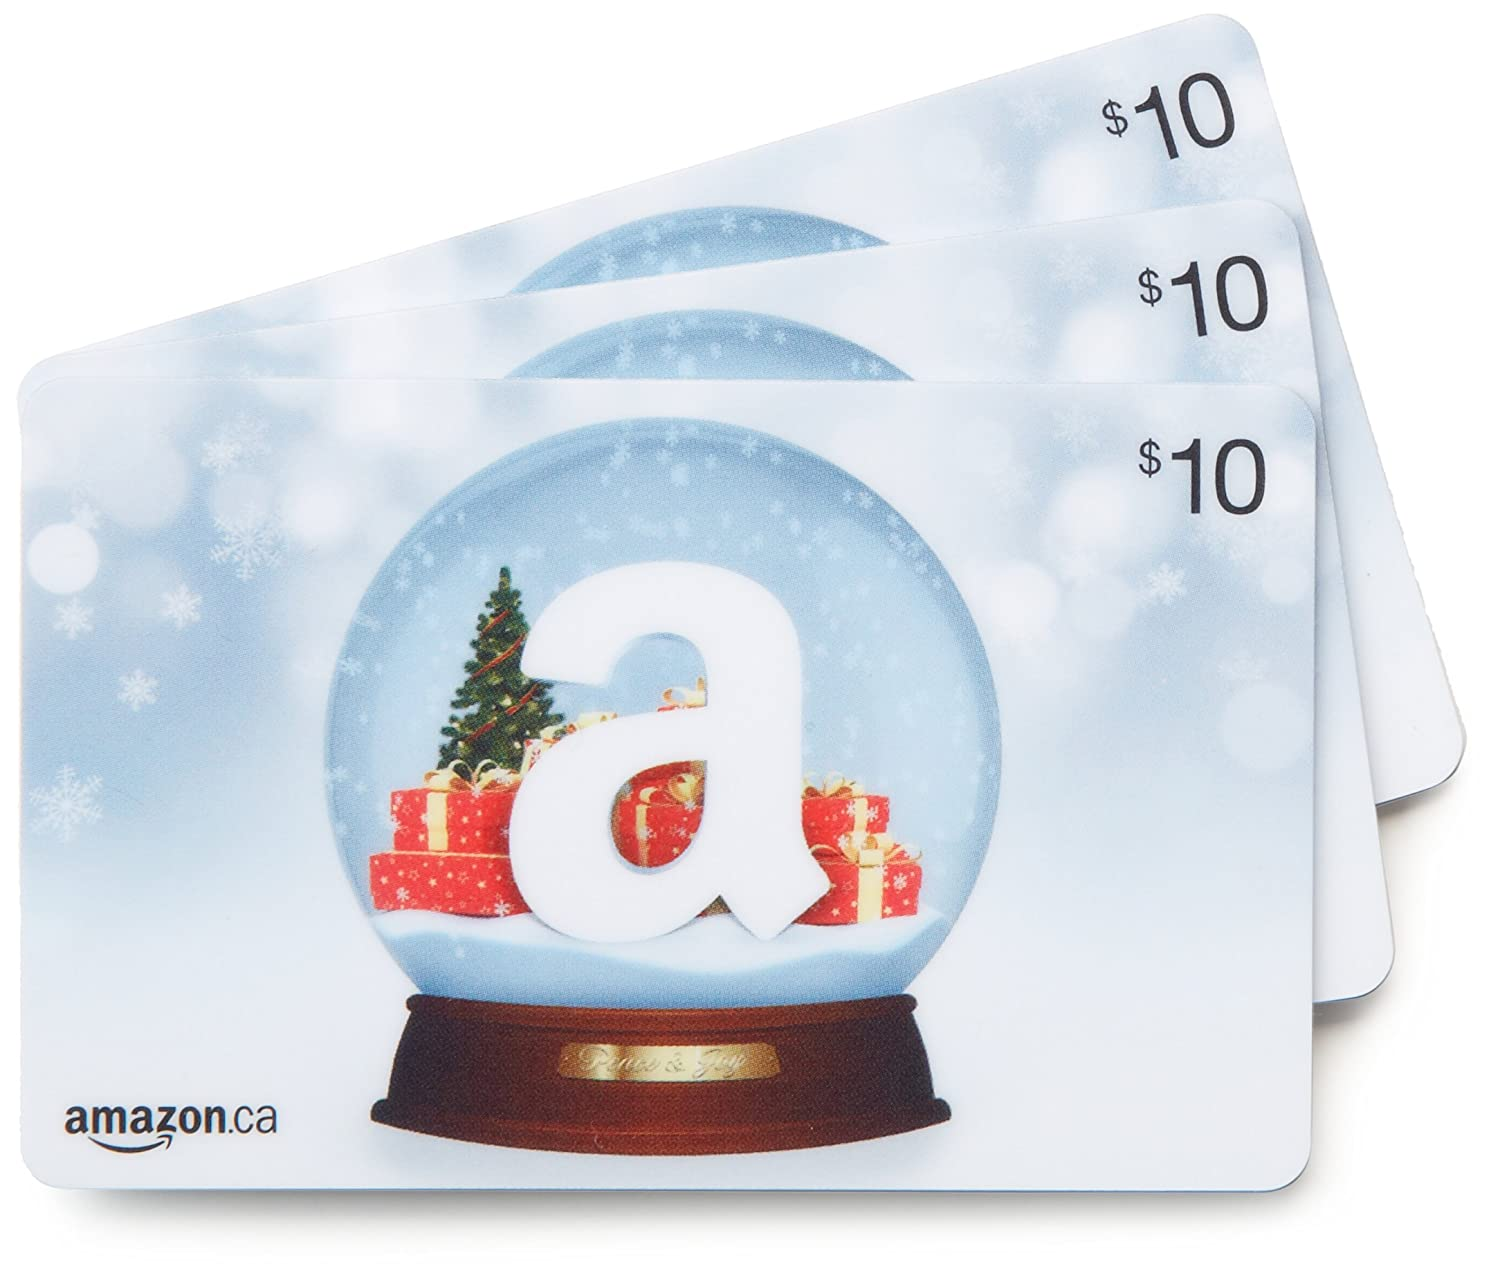 Amazon.ca Gift Cards, Pack of 3 (Various Card Designs) Amazon.ca $25 Gift Card